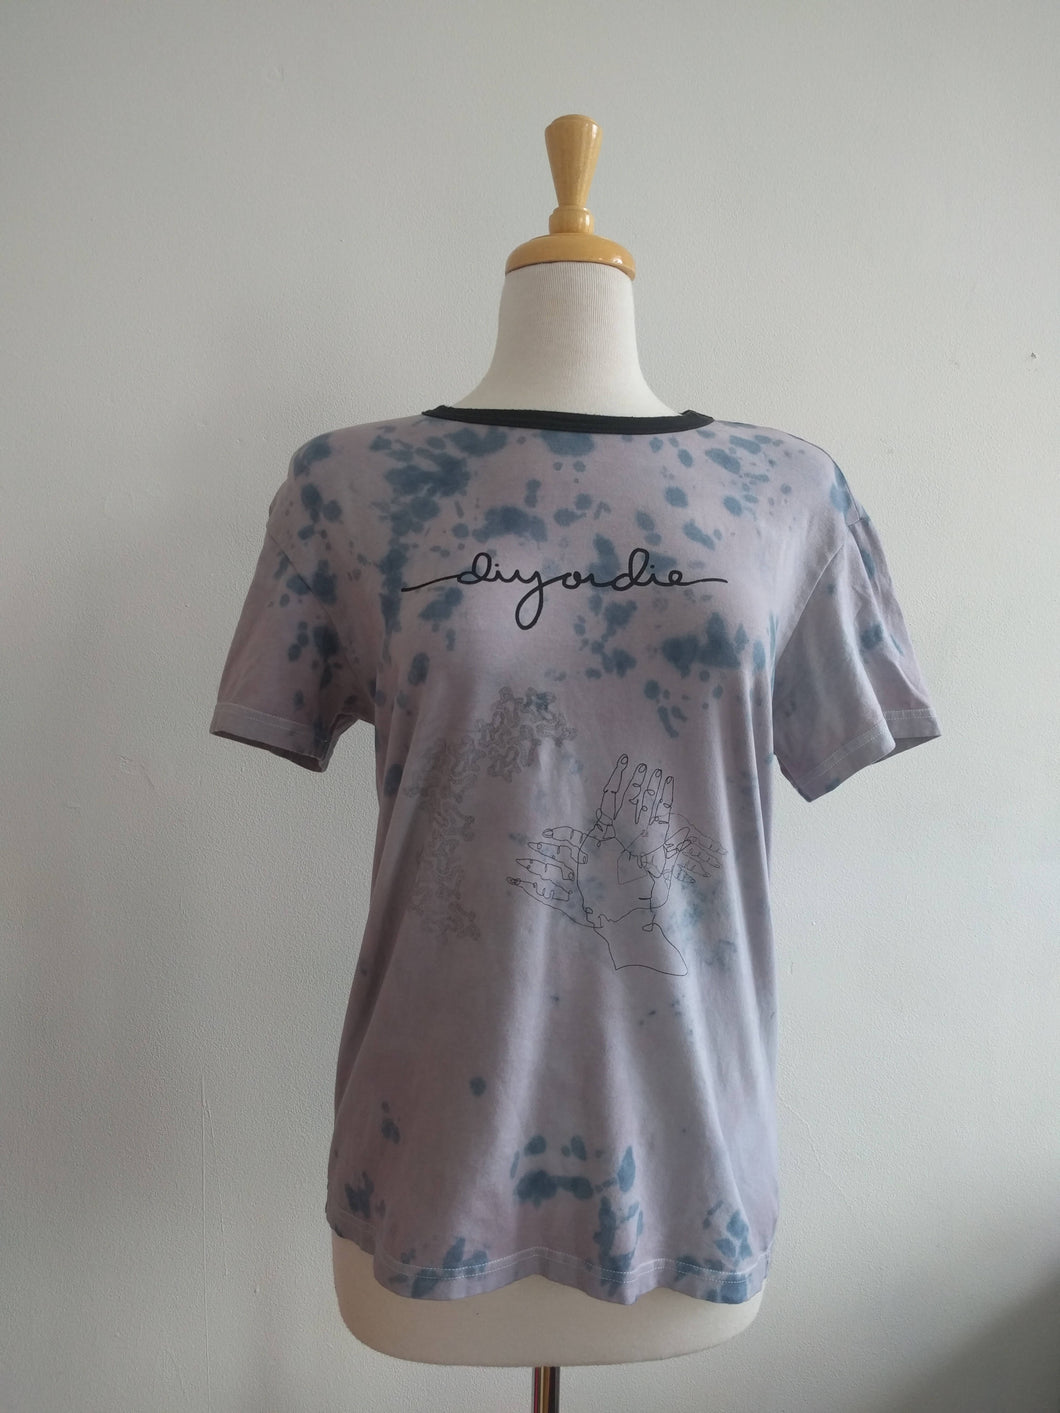 tie dyed upcycled screen printed one of a kind ringer tee— medium